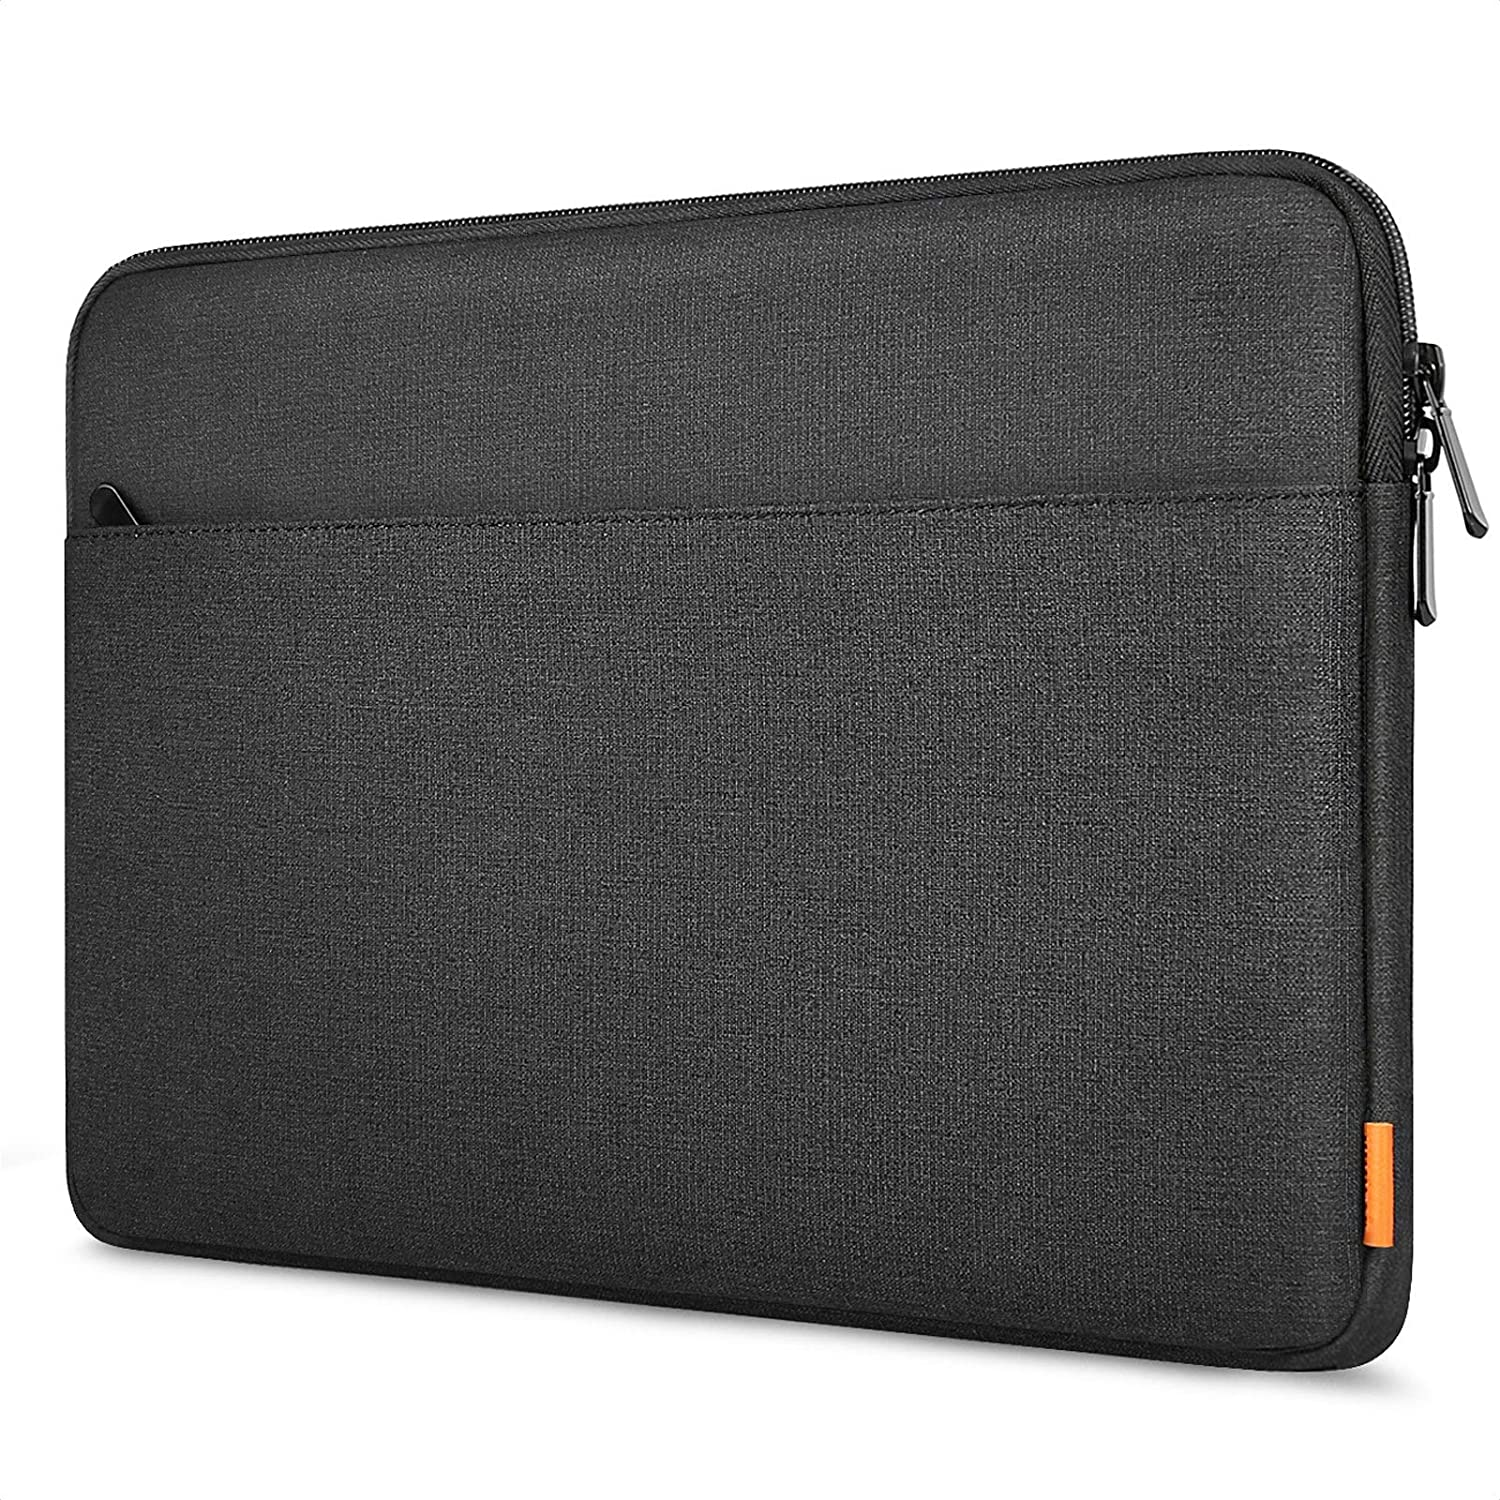 Inateck 14 Inch Laptop Sleeve Case Bag LB01005-14, Black